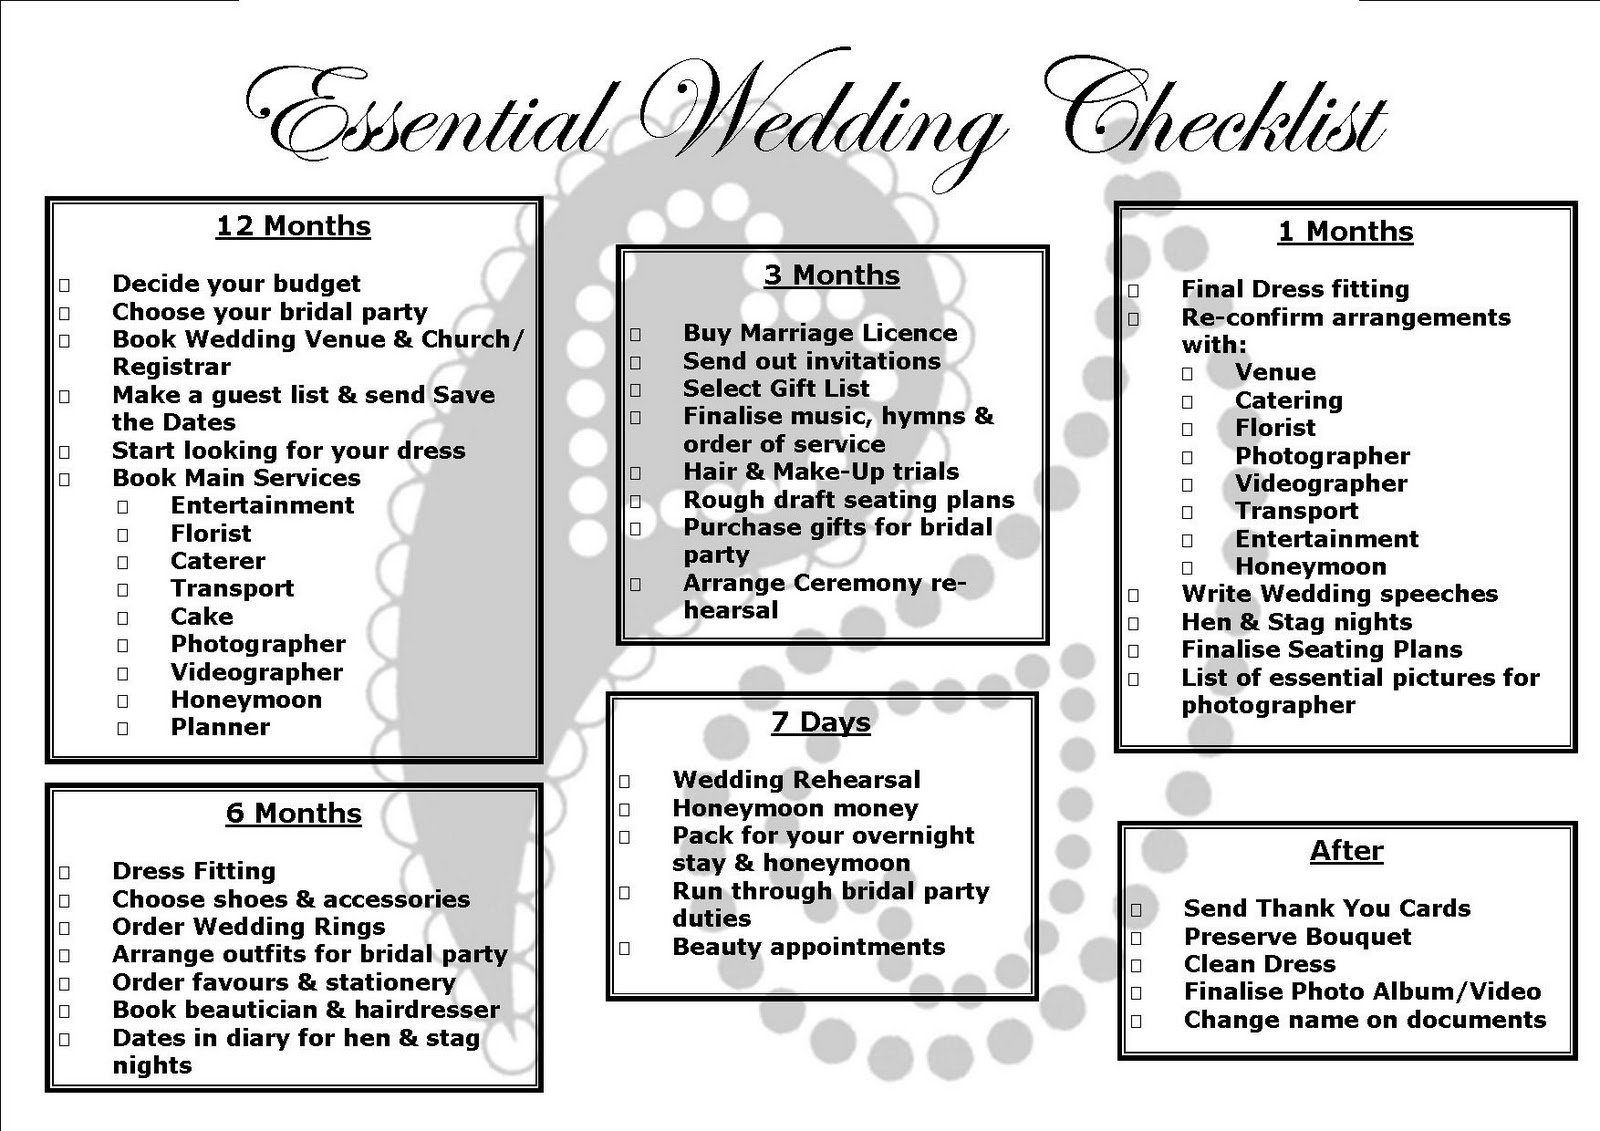 Essential Wedding Checklist - Awesome wedding